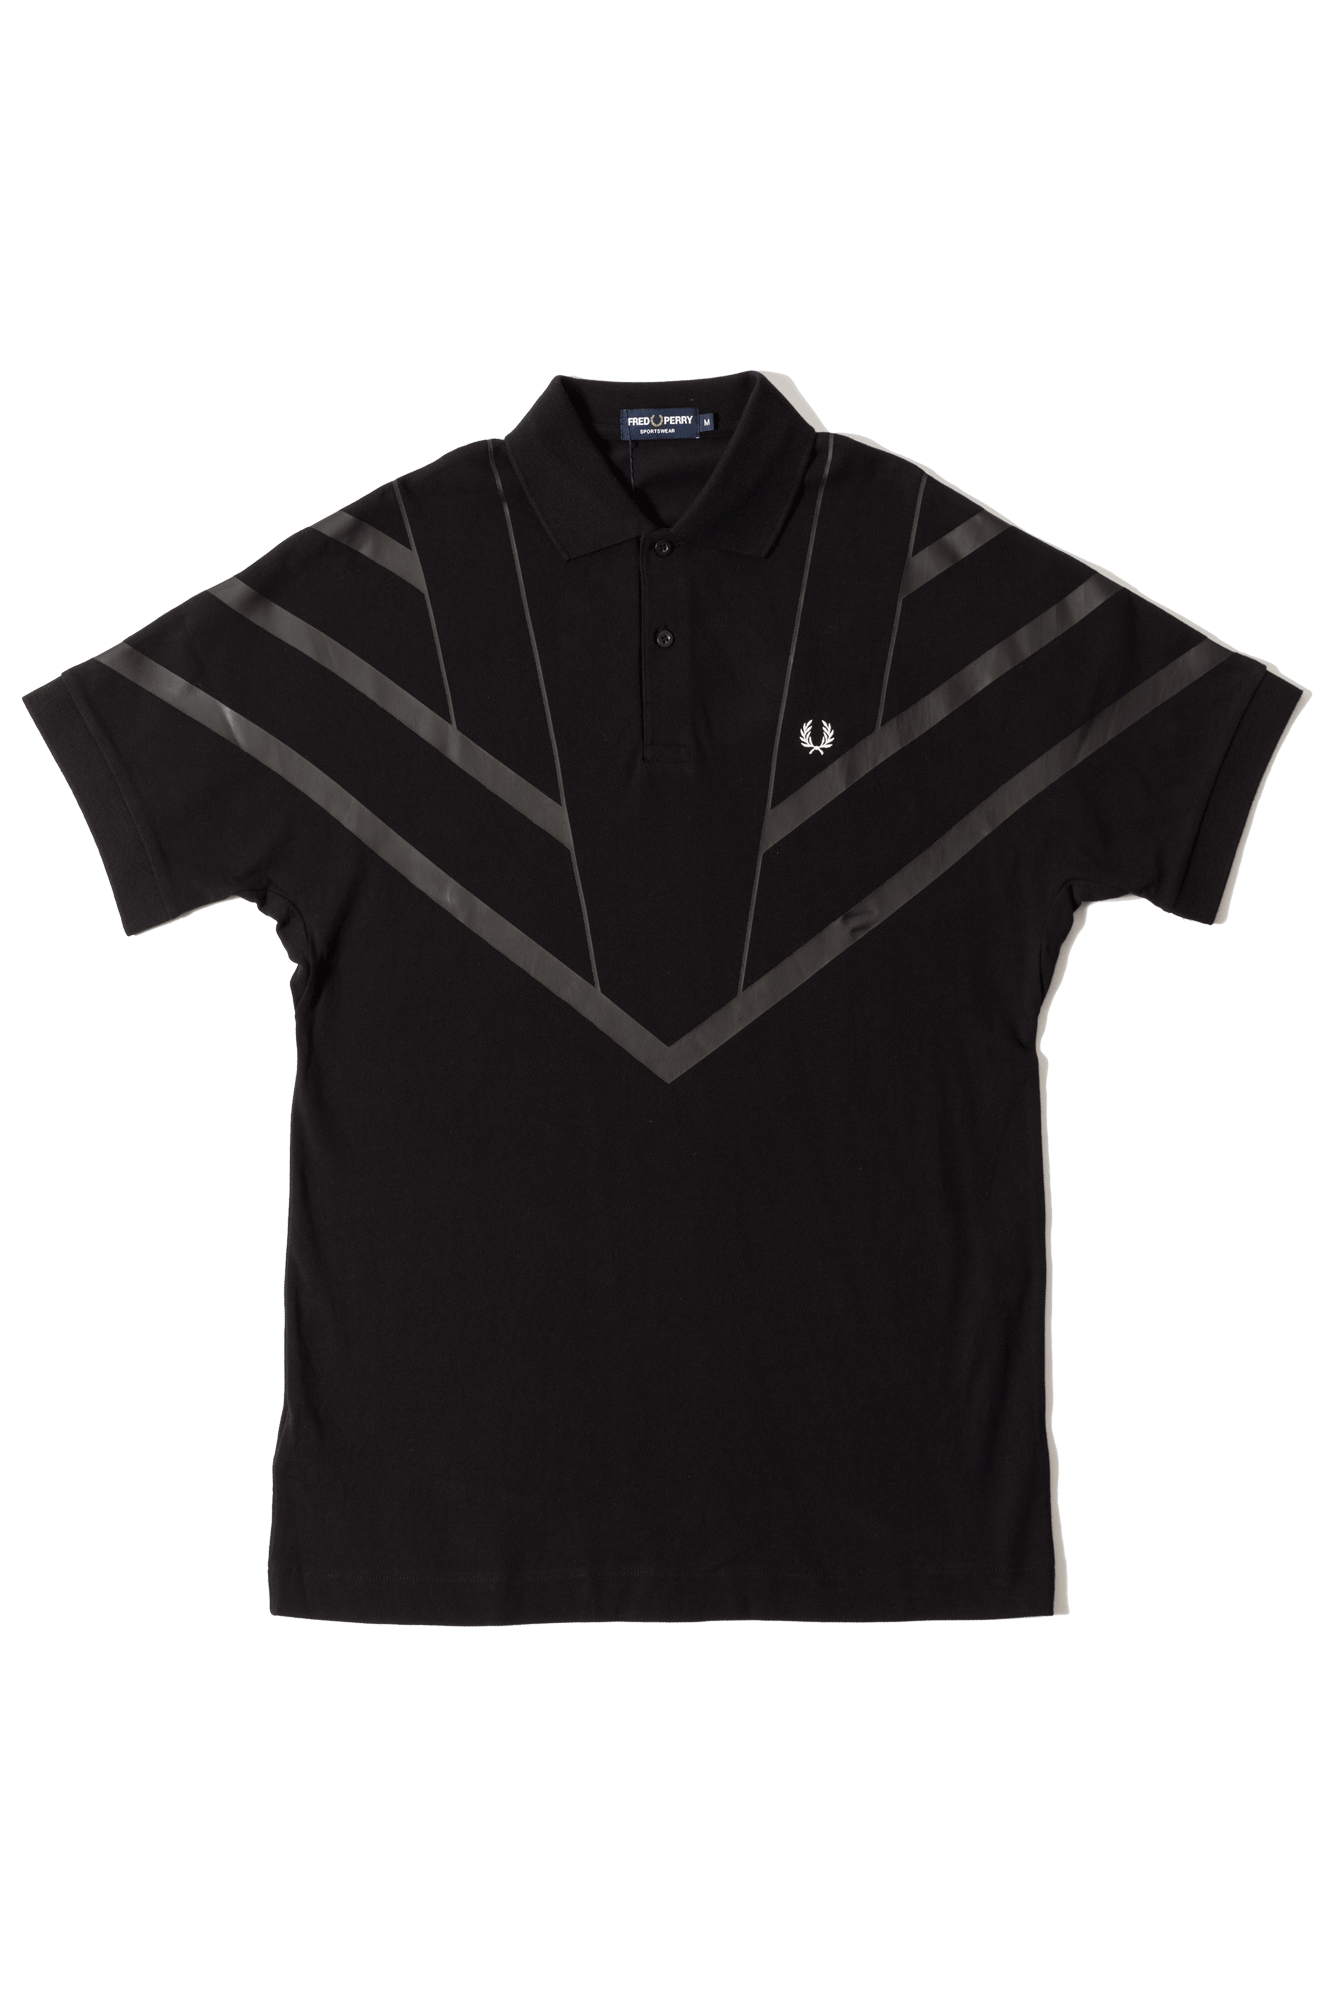 Fred Perry Polo Monochrome Pique Shirt Nero M4550102#000#C0010#XS - One Block Down